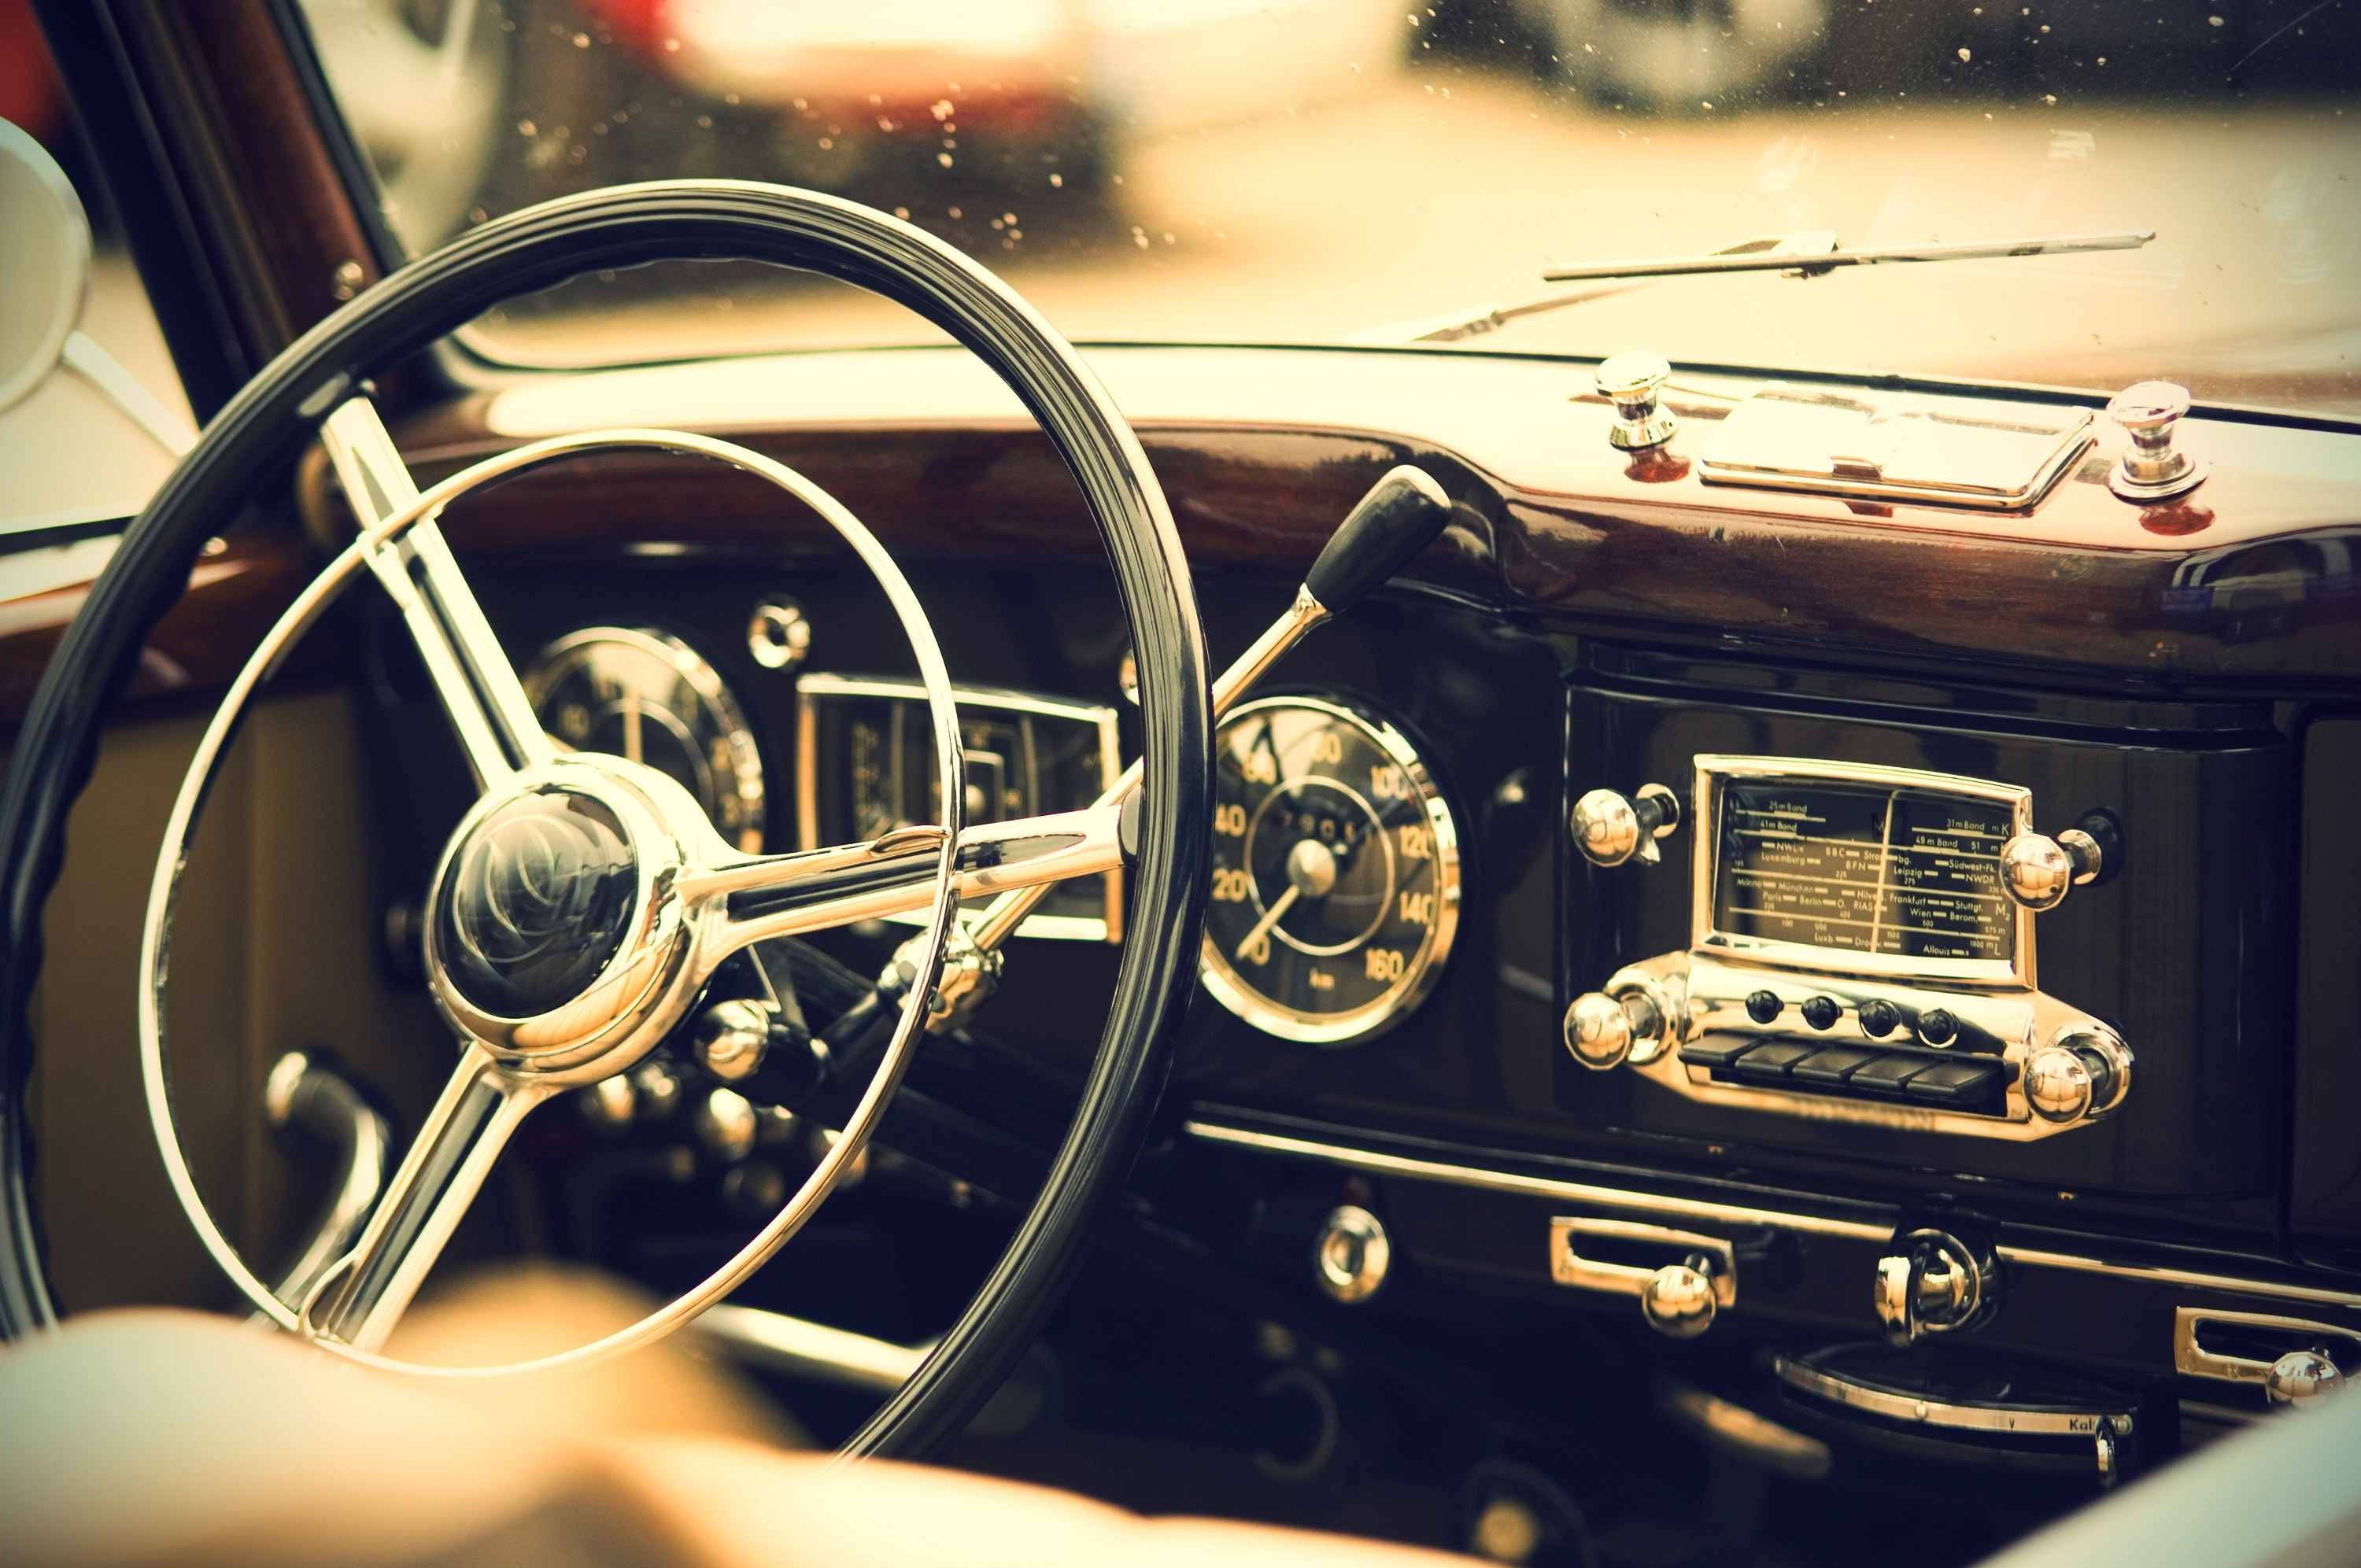 Old Car Online: Classic and Antique Cars, Trucks, Tractors ...